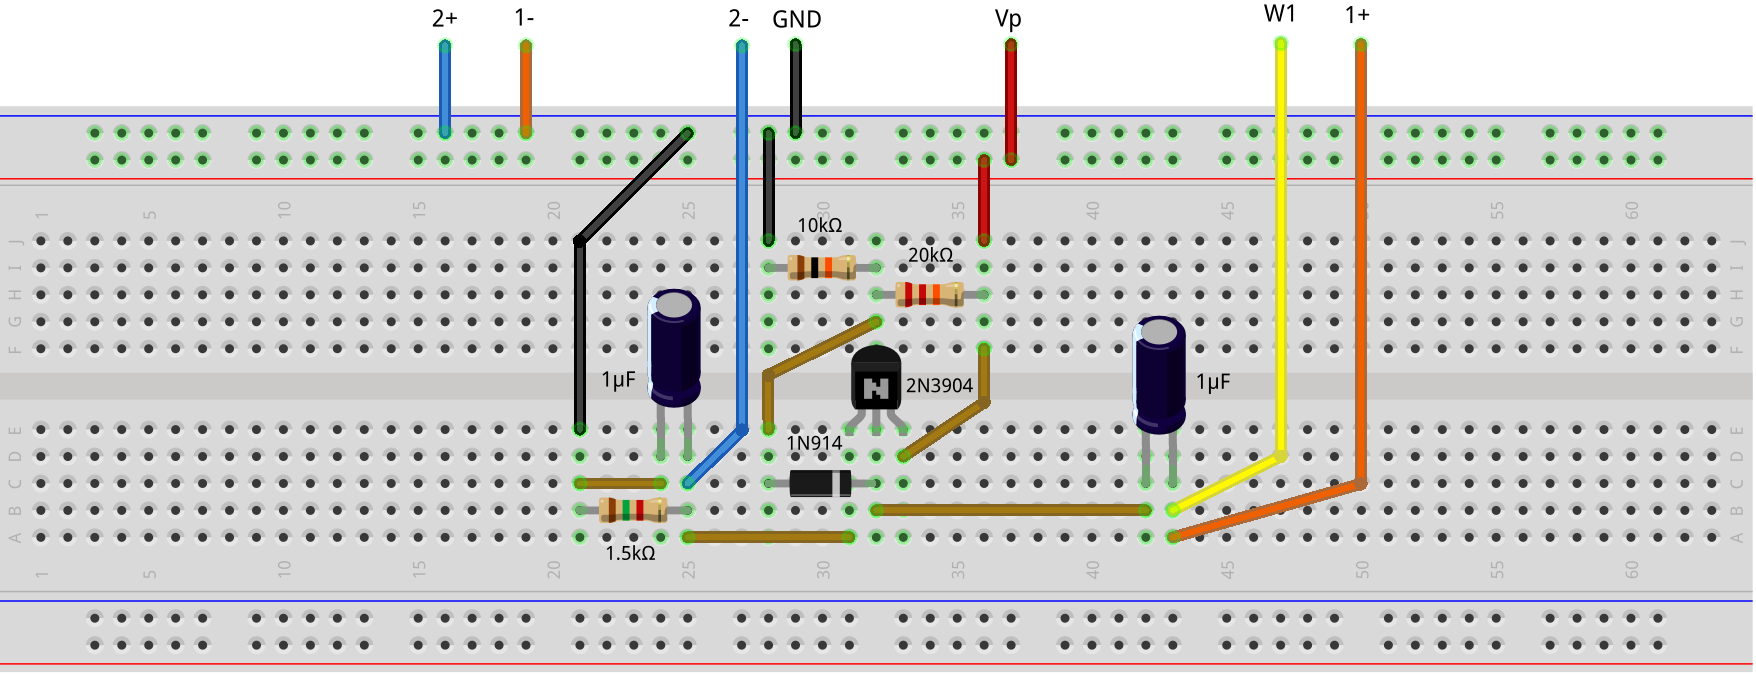 Activity Envelope Detector Analog Devices Wiki Bias Understand This Filter And Biasing Circuit Electrical Hardware Setup Build The Following Breadboard For Biased